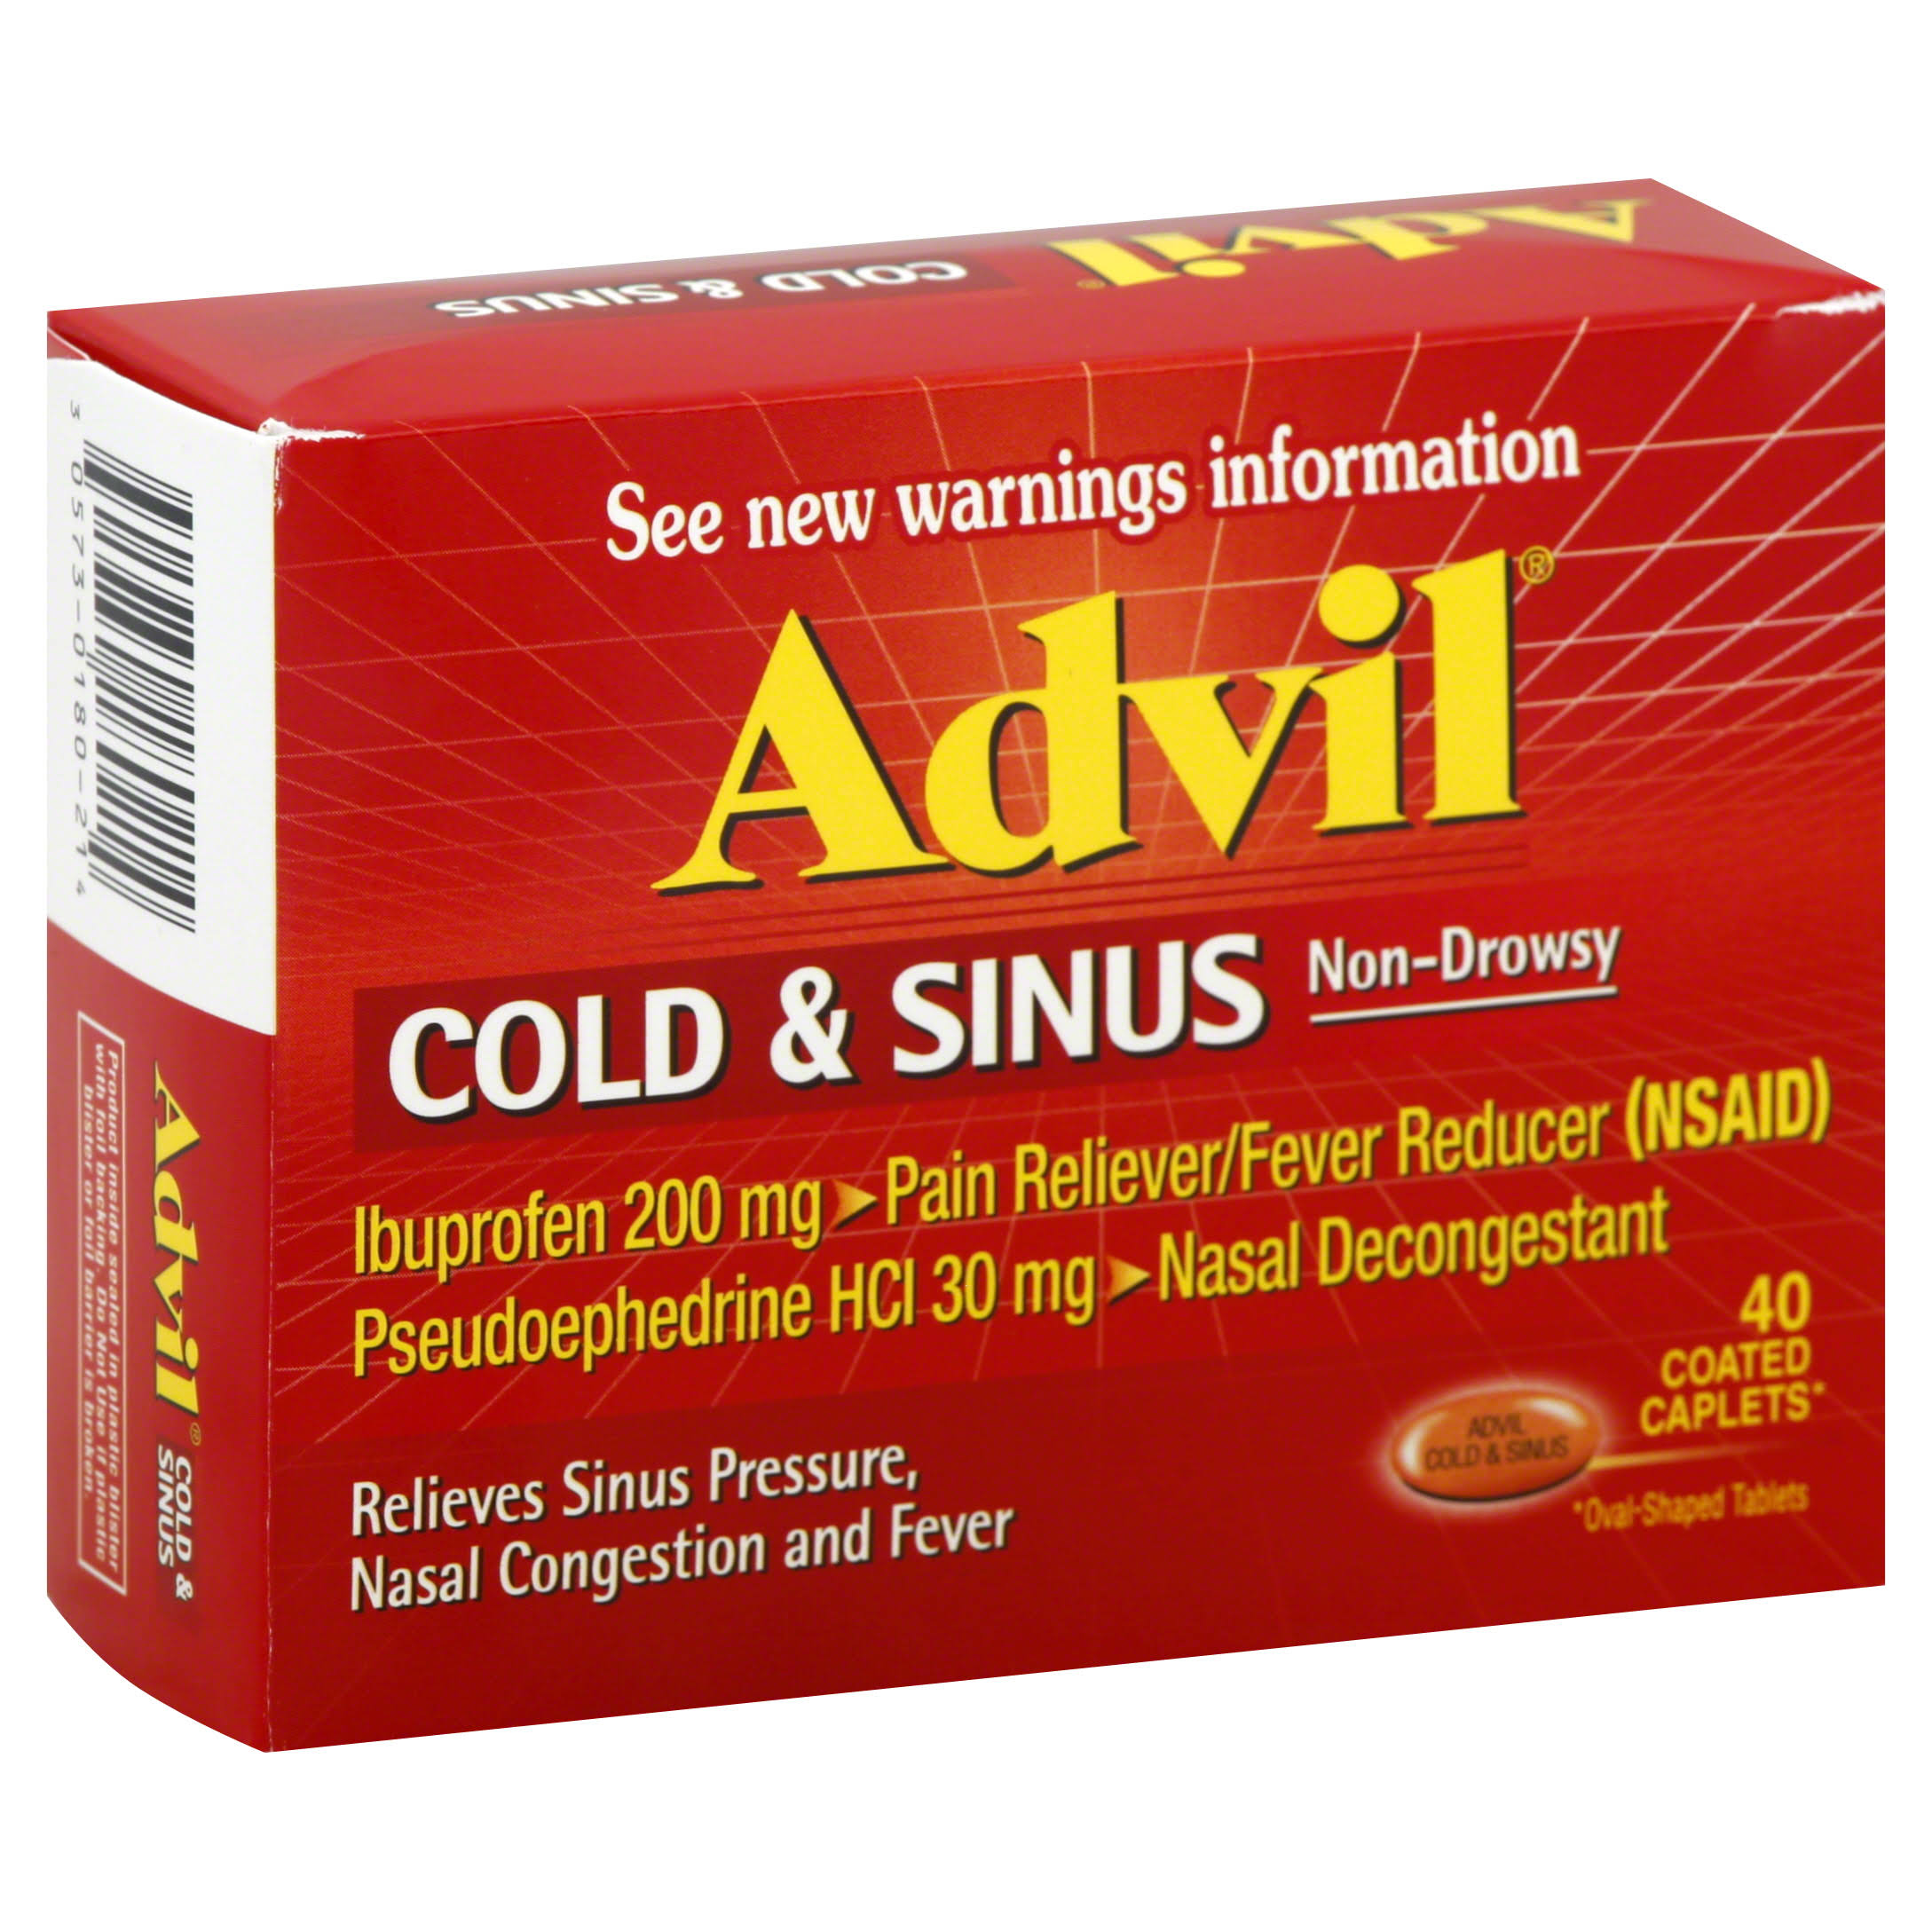 Advil Cold and Sinus Non-drowsy Ibuprofen Coated Caplets - 40 Count